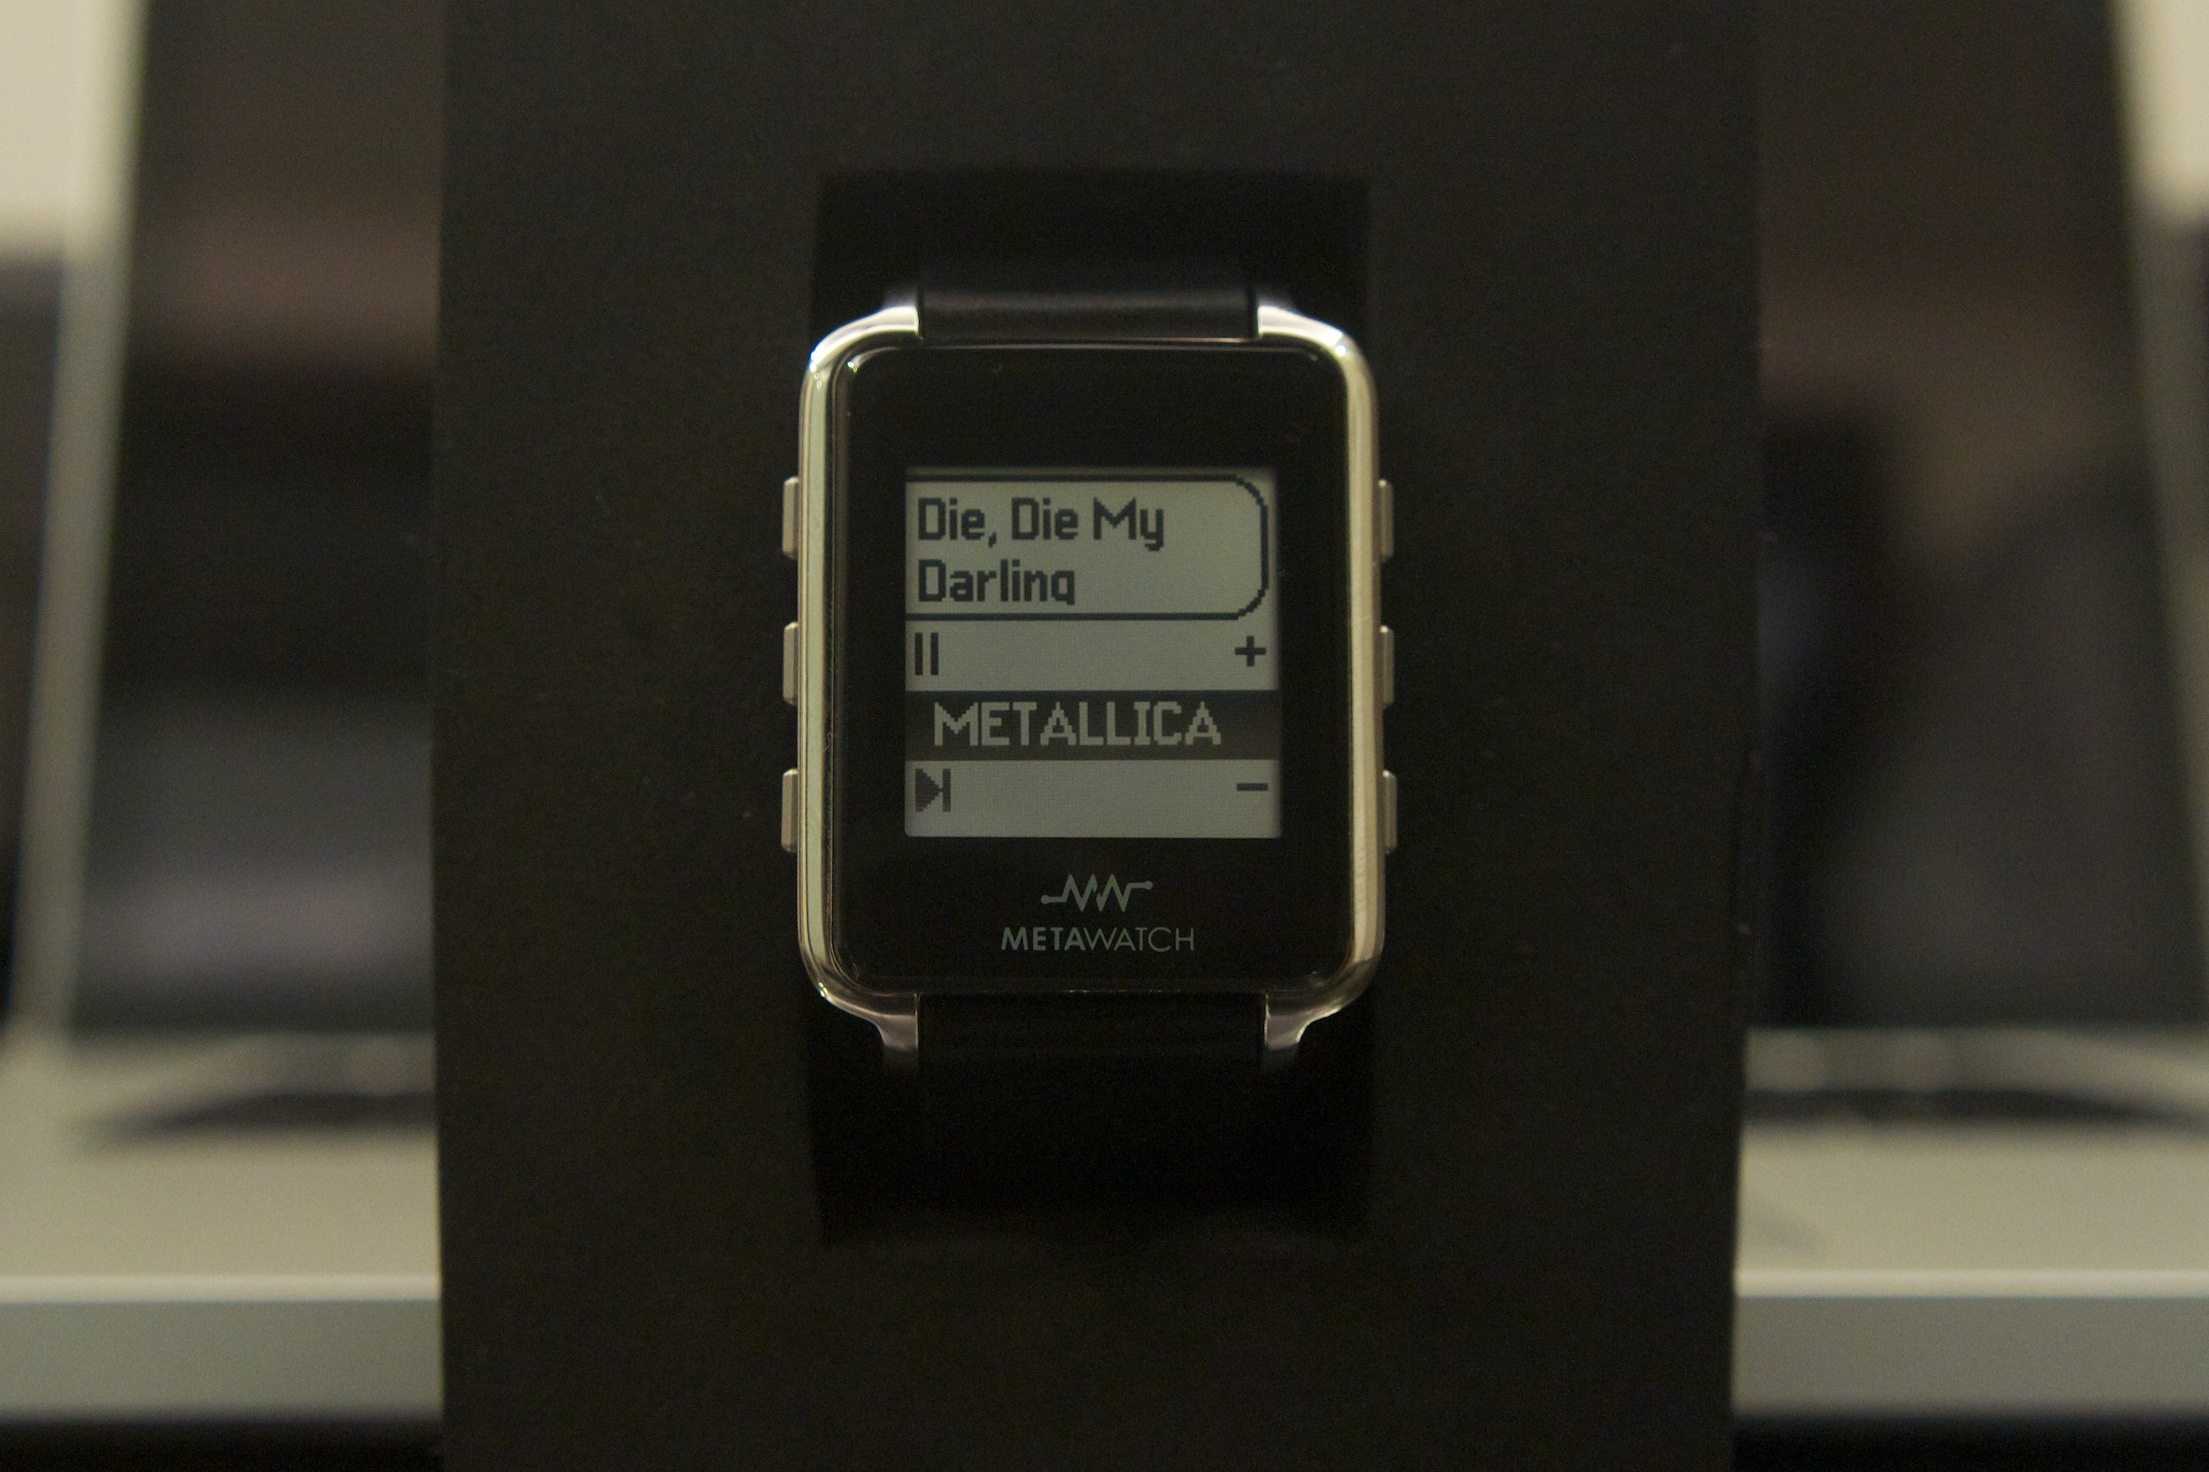 MetaWatch Music controls